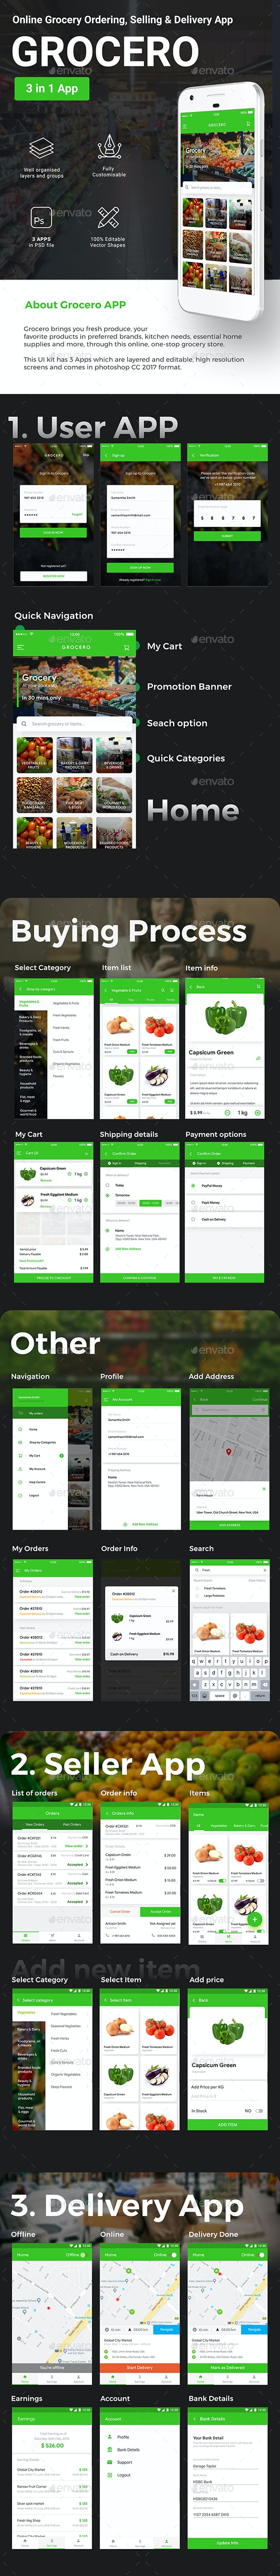 3 in 1 Grocery App UI Kit | Grocery Ordering, Selling & Delivery App | Grocero - User Interfaces Web Elements